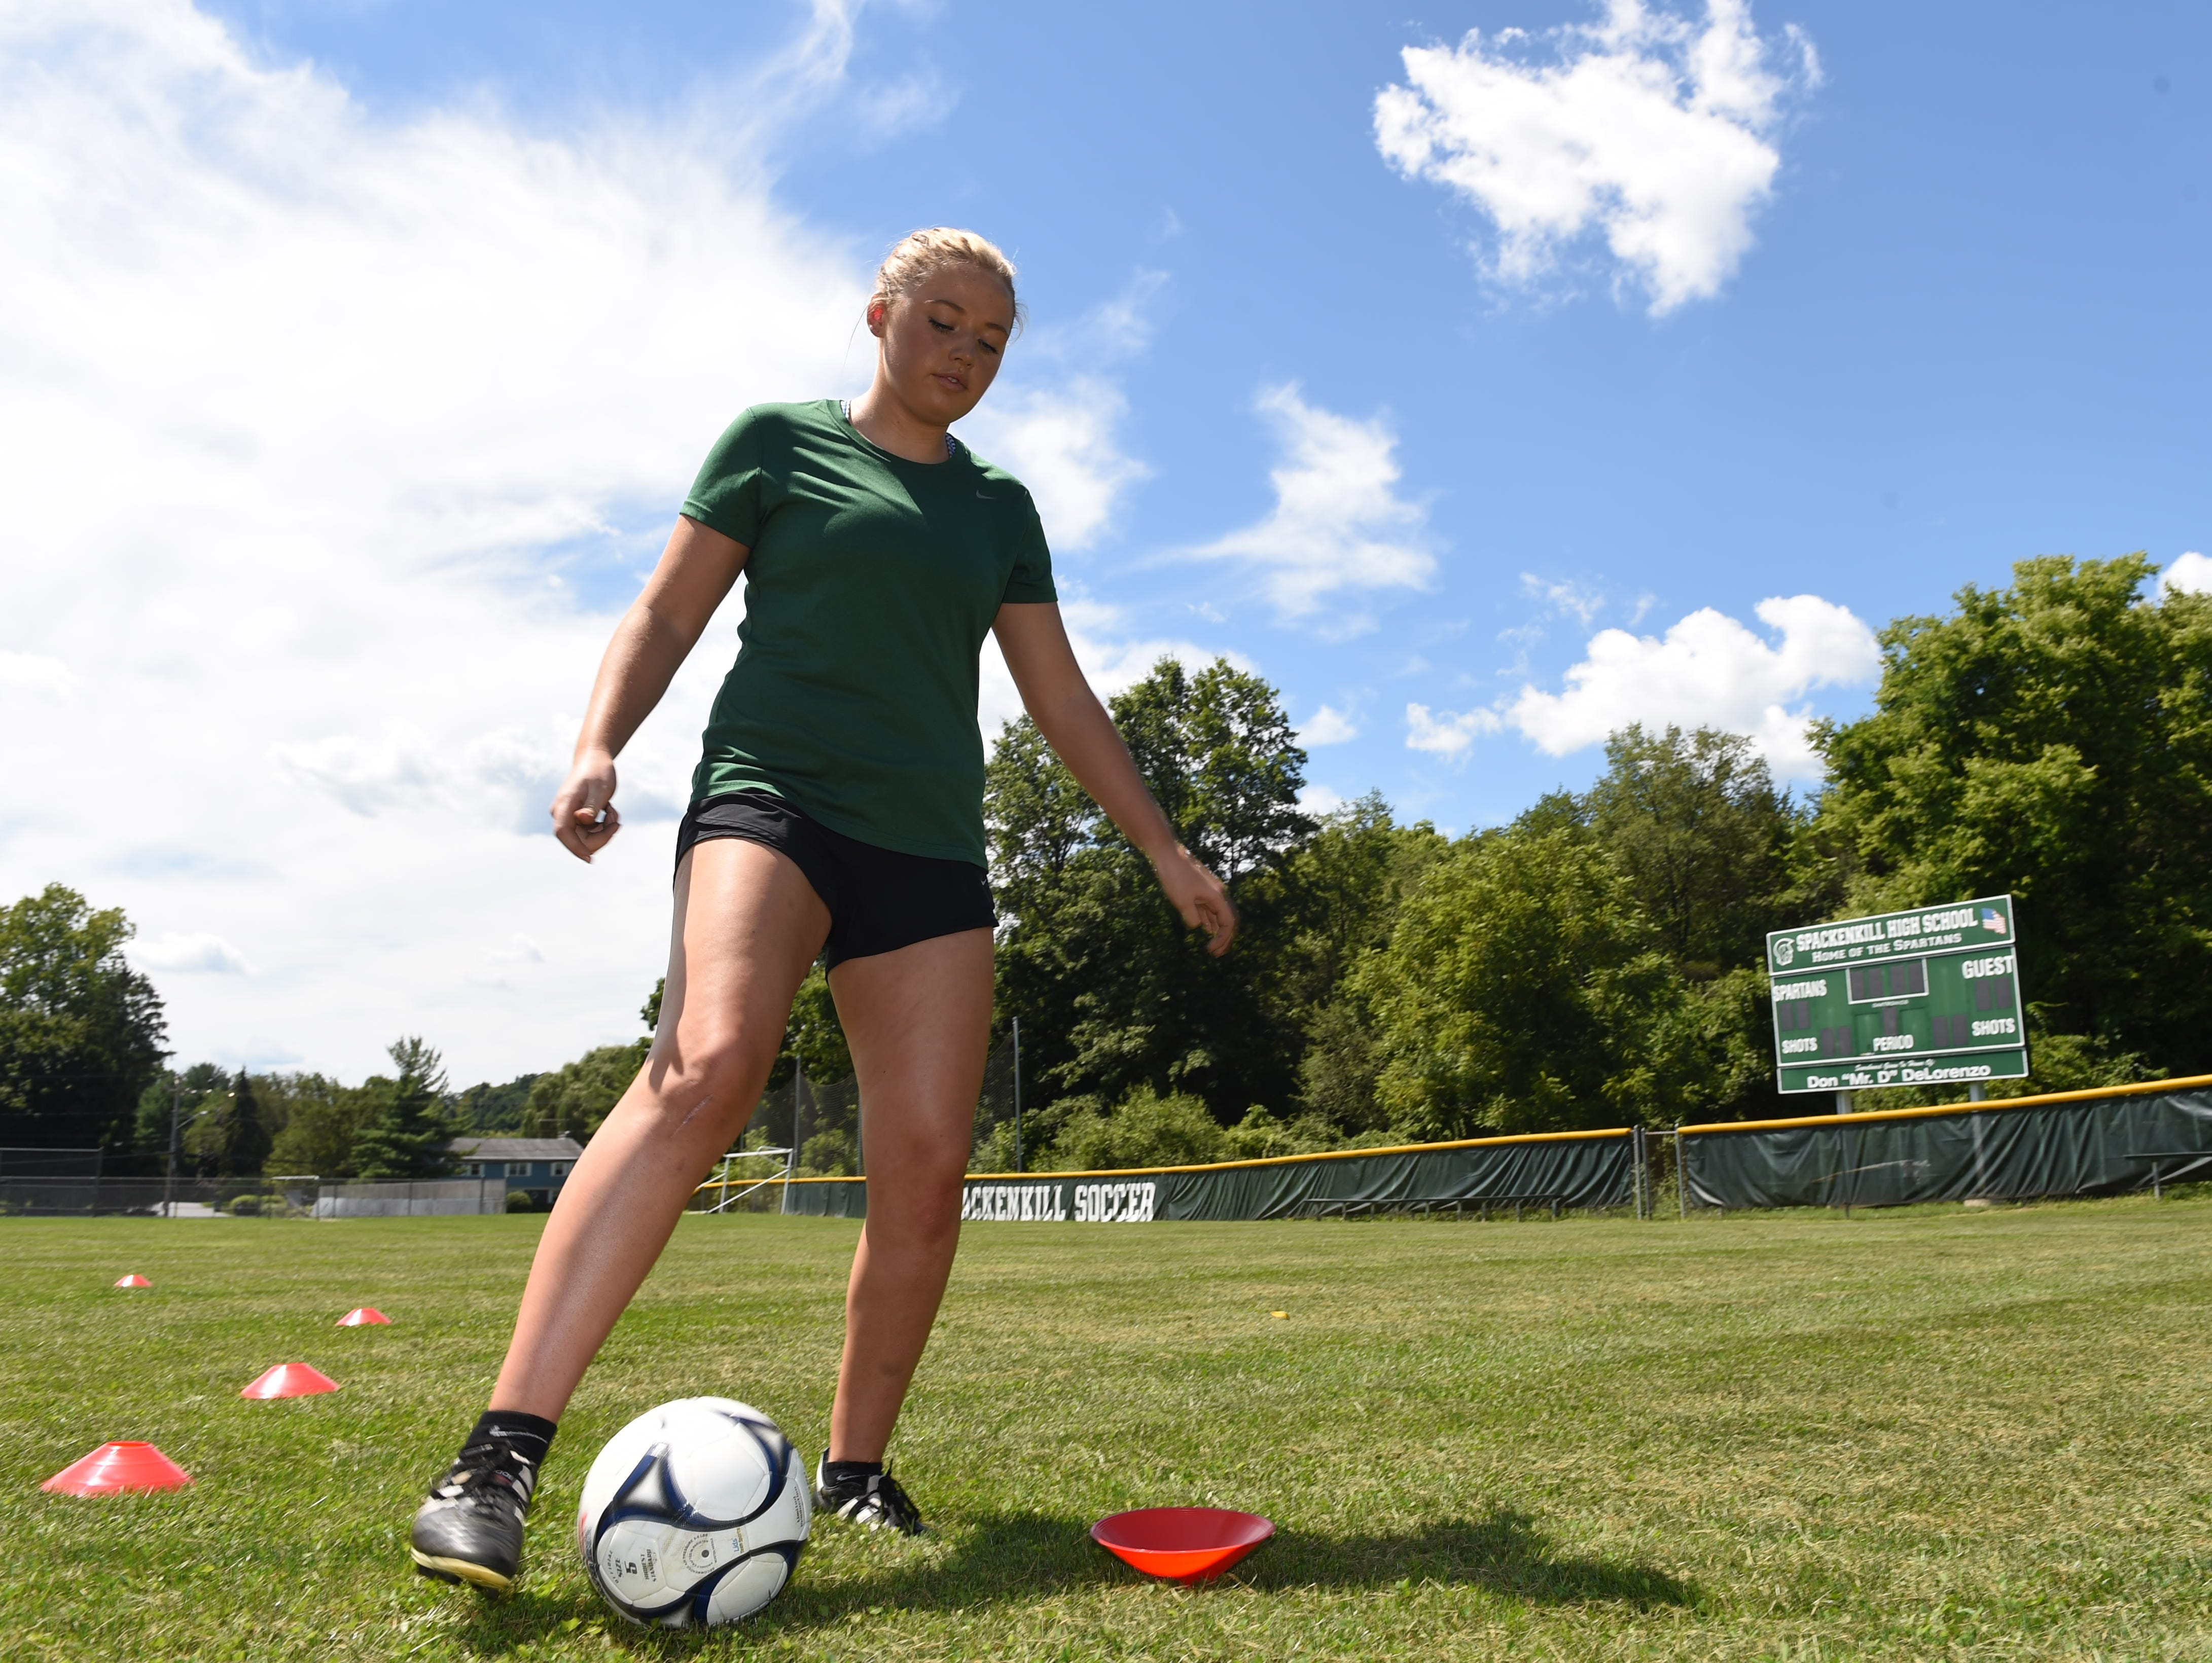 Eileen Fiore dribbles a soccer ball while demonstrating her workout routine at Spackenkill High School on Monday. Fiore tore her ACL during a playoff game against Dover High School on October 29, 2015.